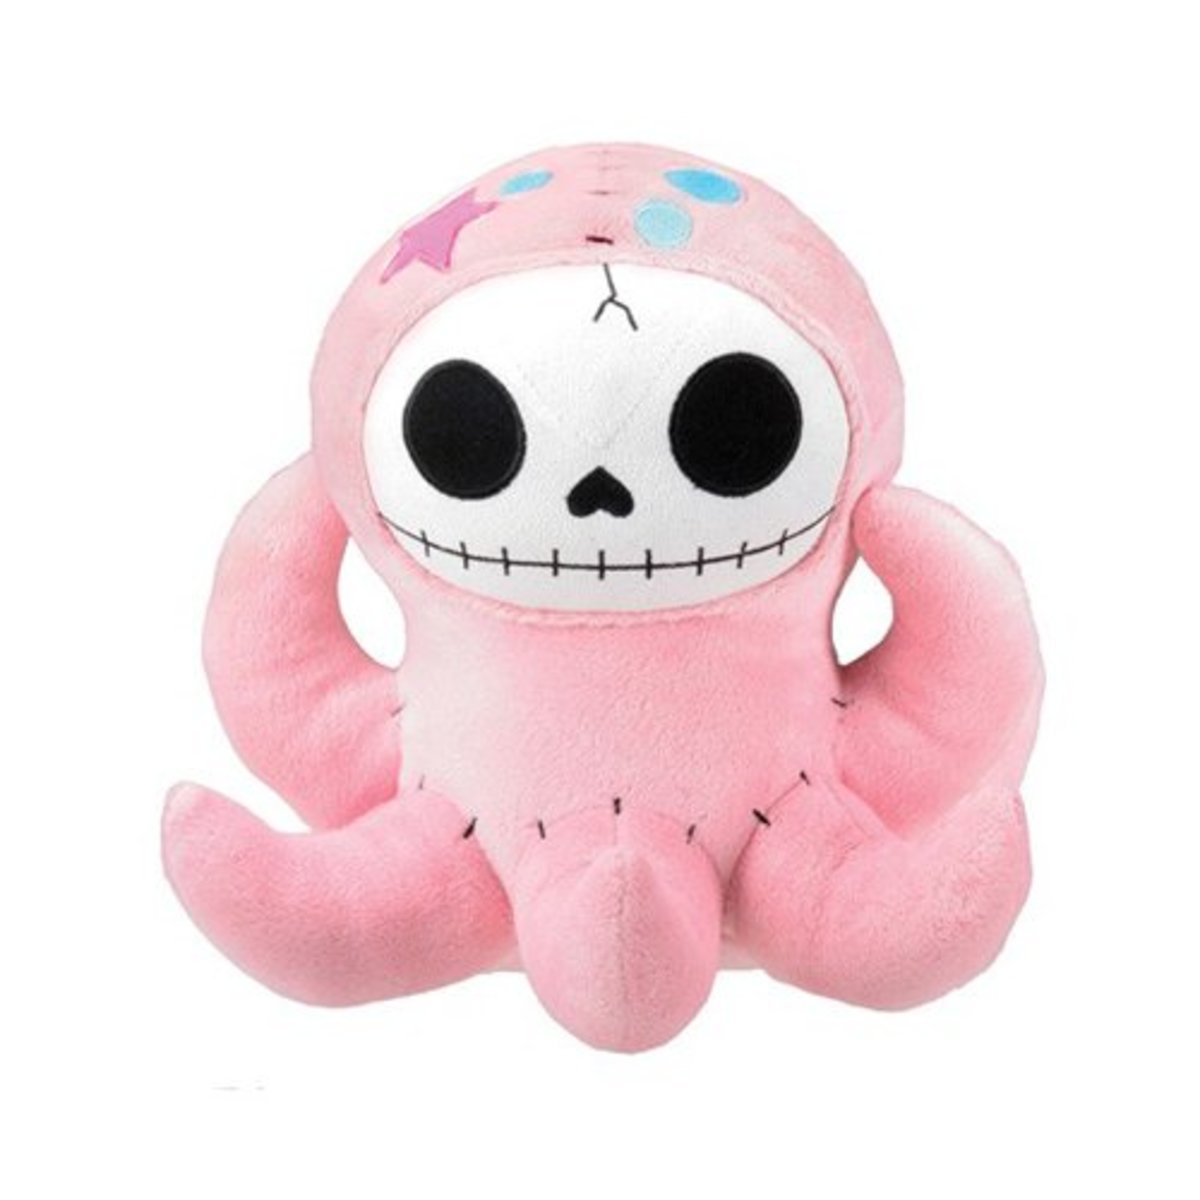 Furrybones Octopee Plush by Summit Collection.